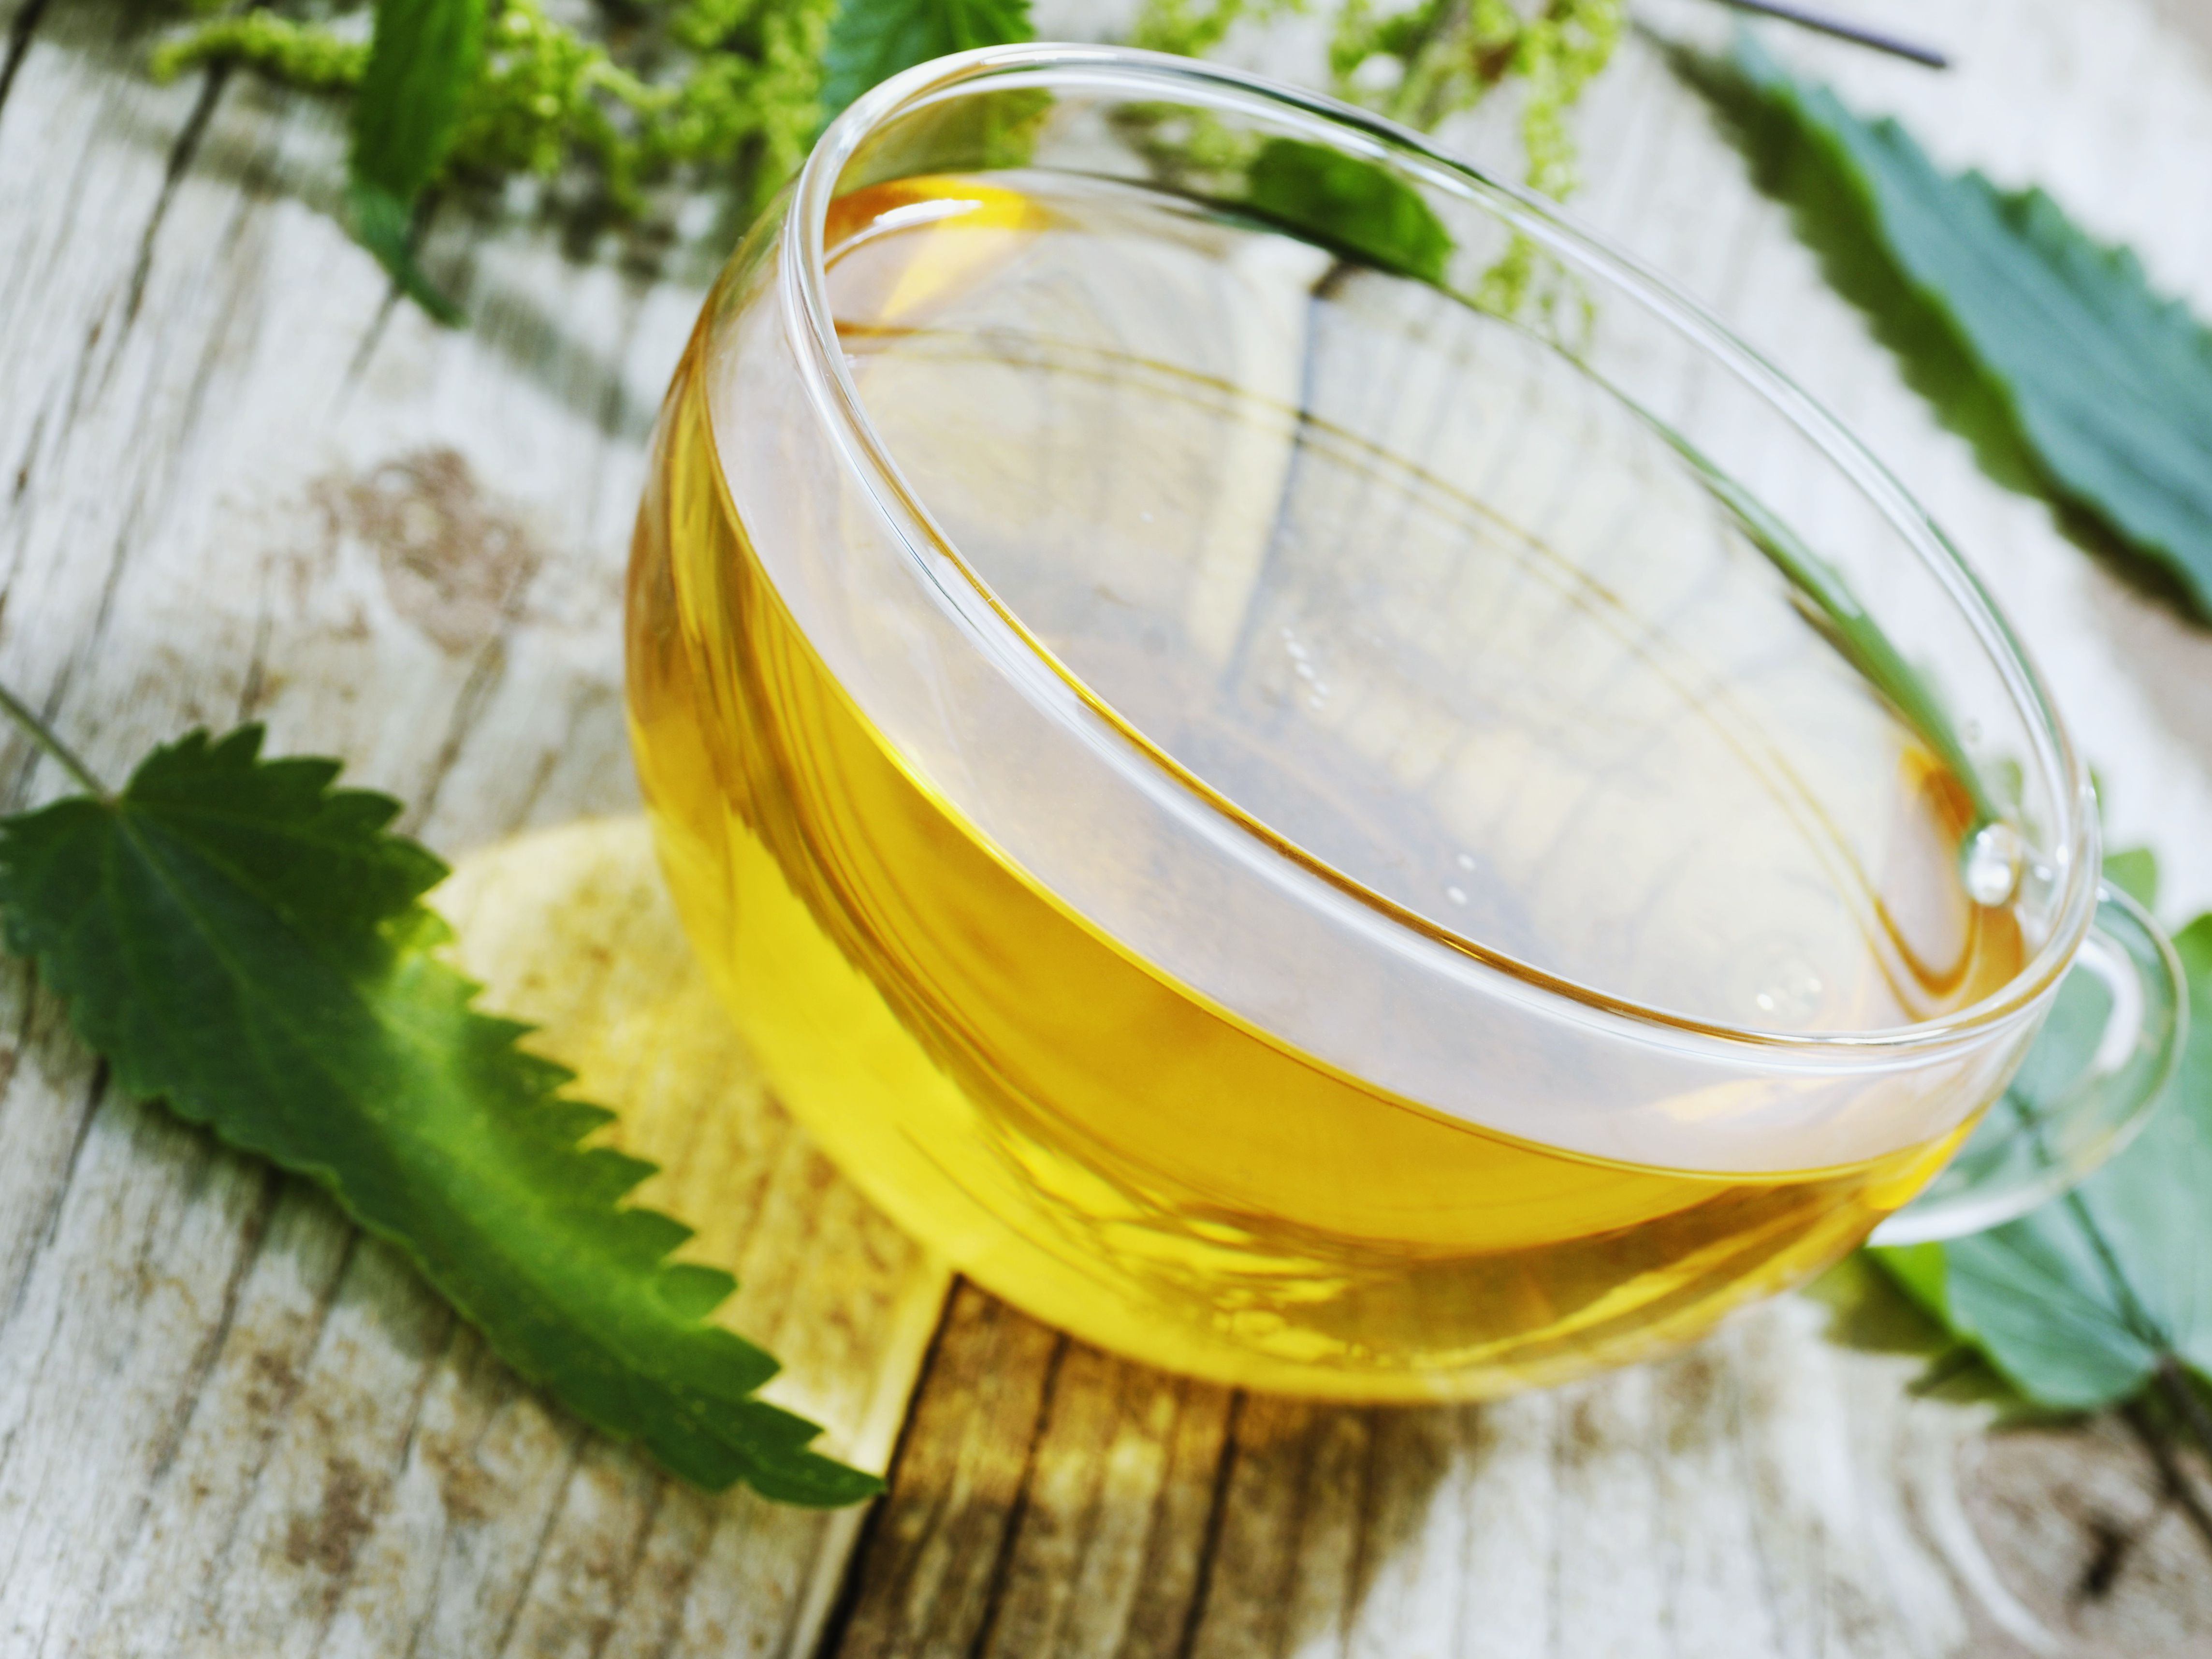 Brewing Nettle Tea and Its Health Benefits